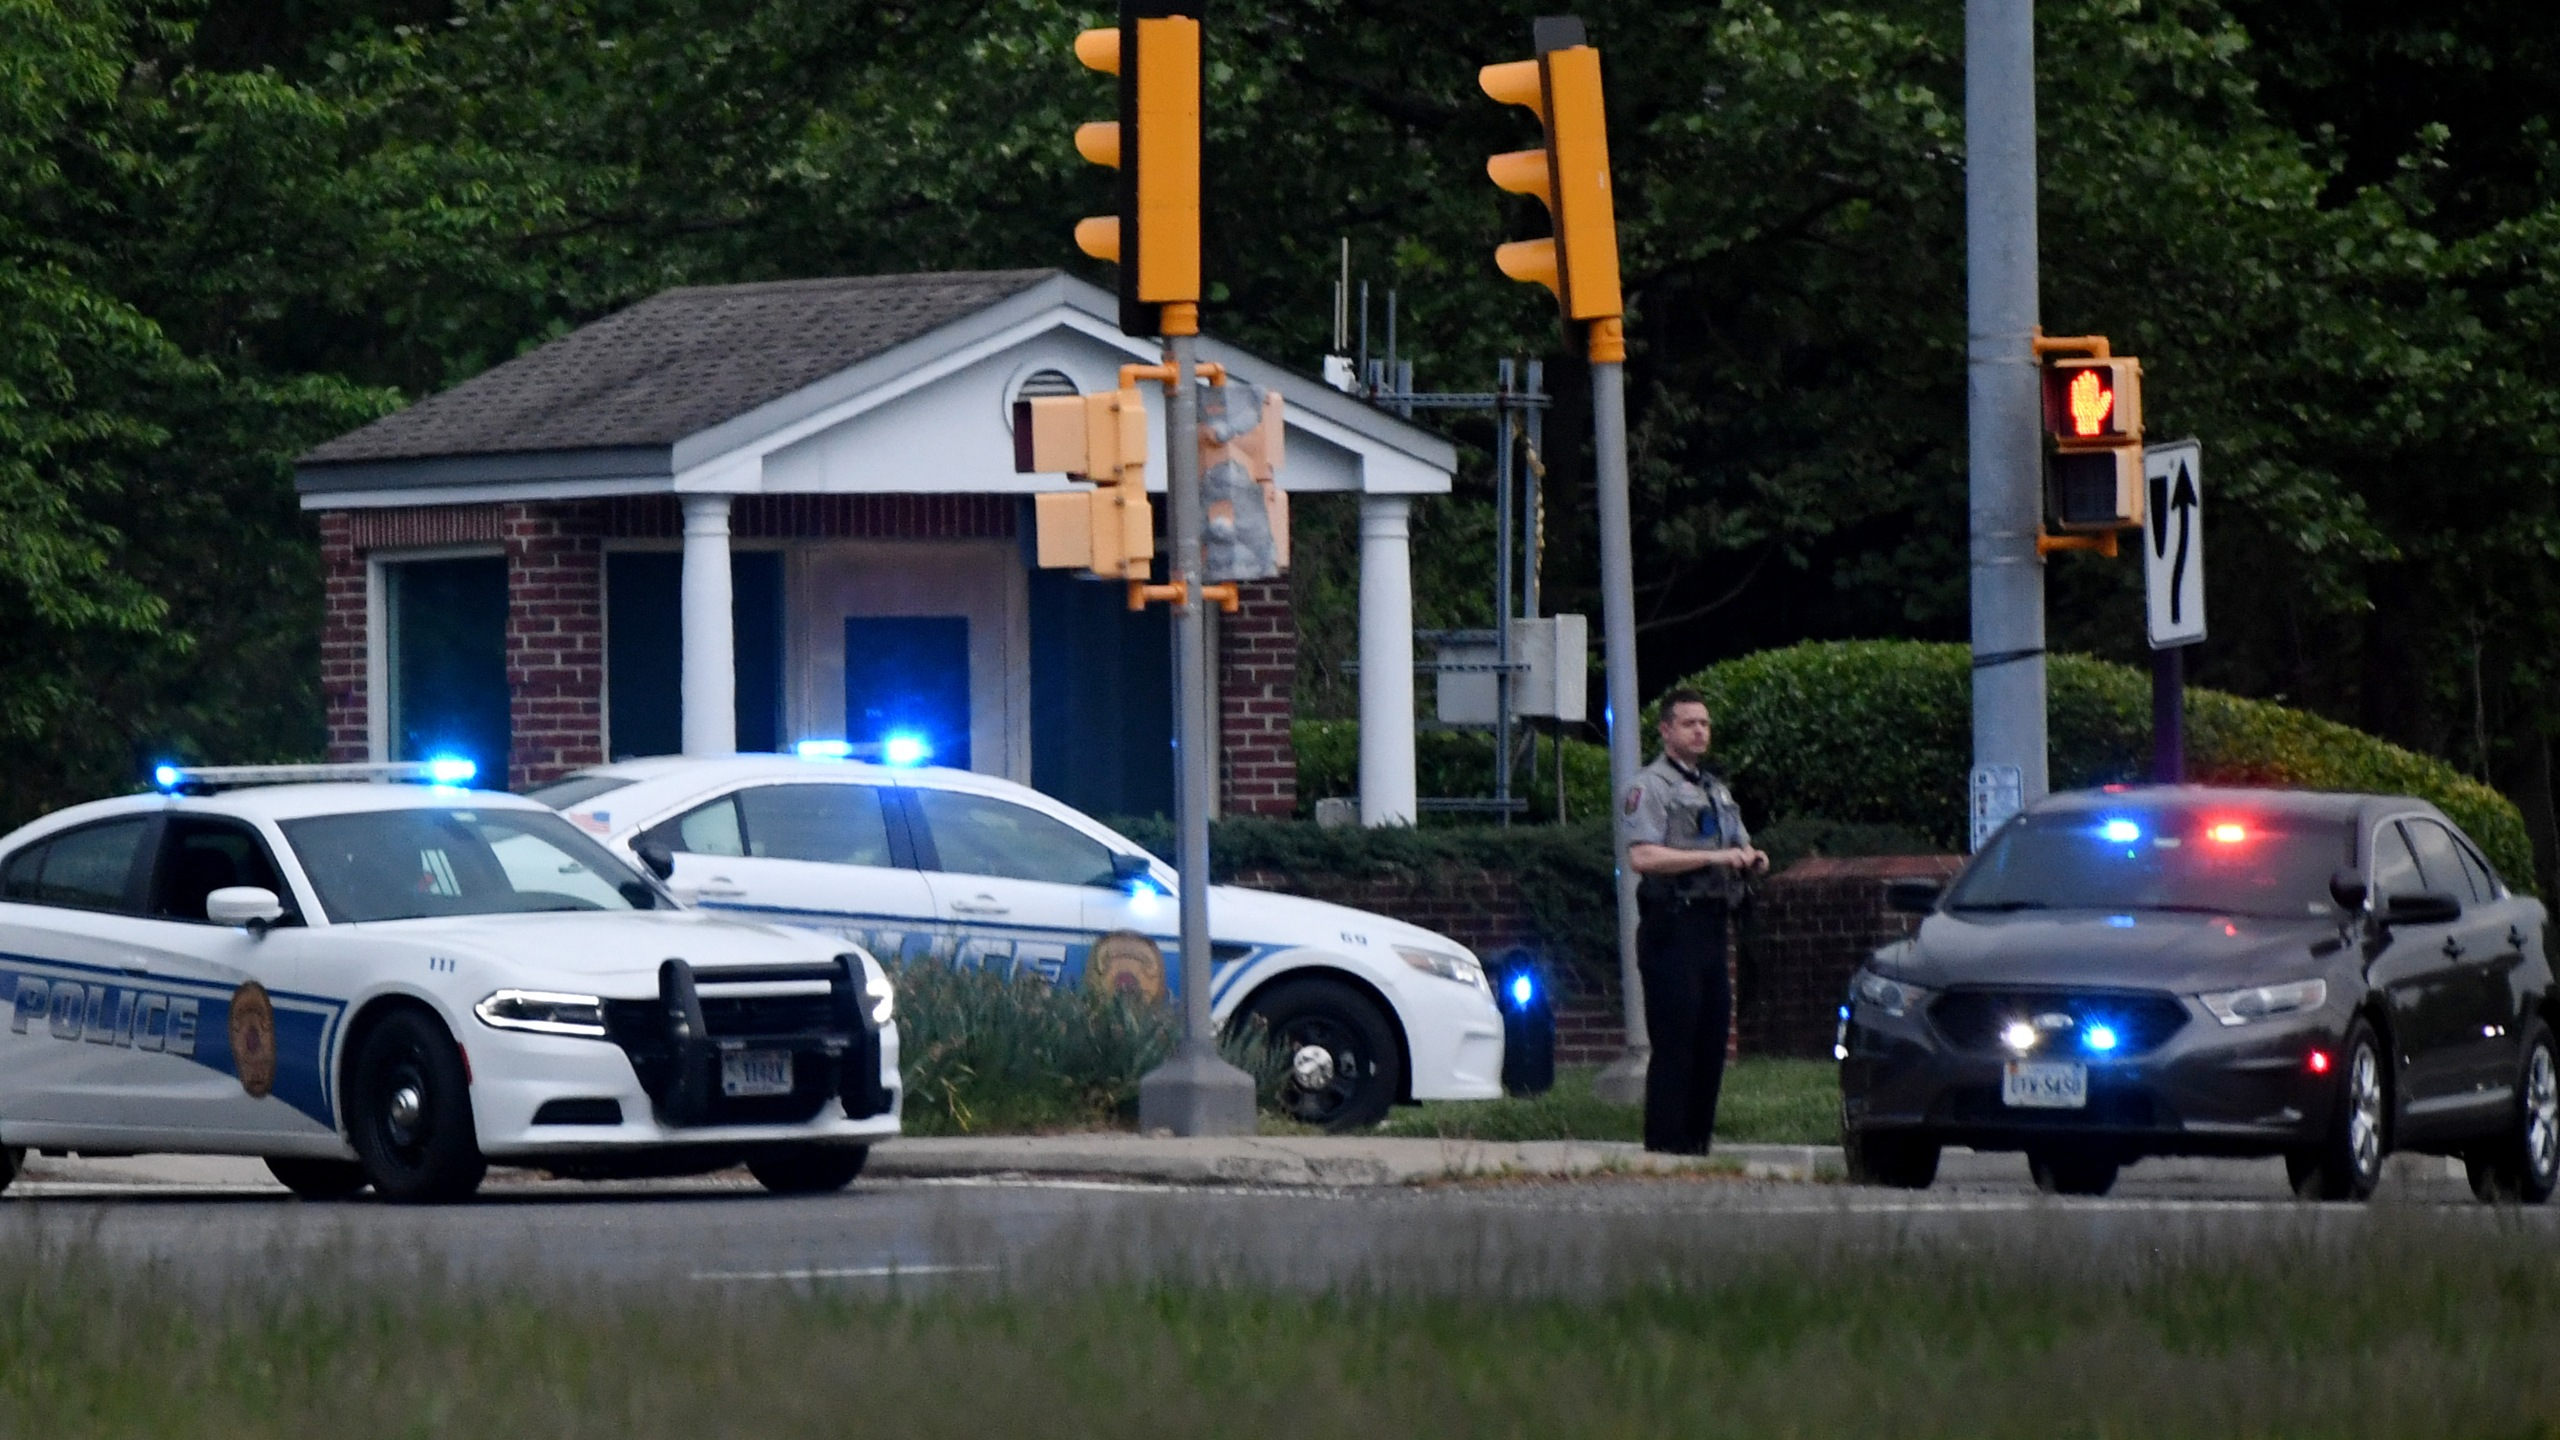 Police cars are seen outside the CIA headquarters' gate after an attempted intrusion earlier in the day in Langley, Virginia, on May 3, 2021. (Olivier Douliery / AFP / Getty Images)